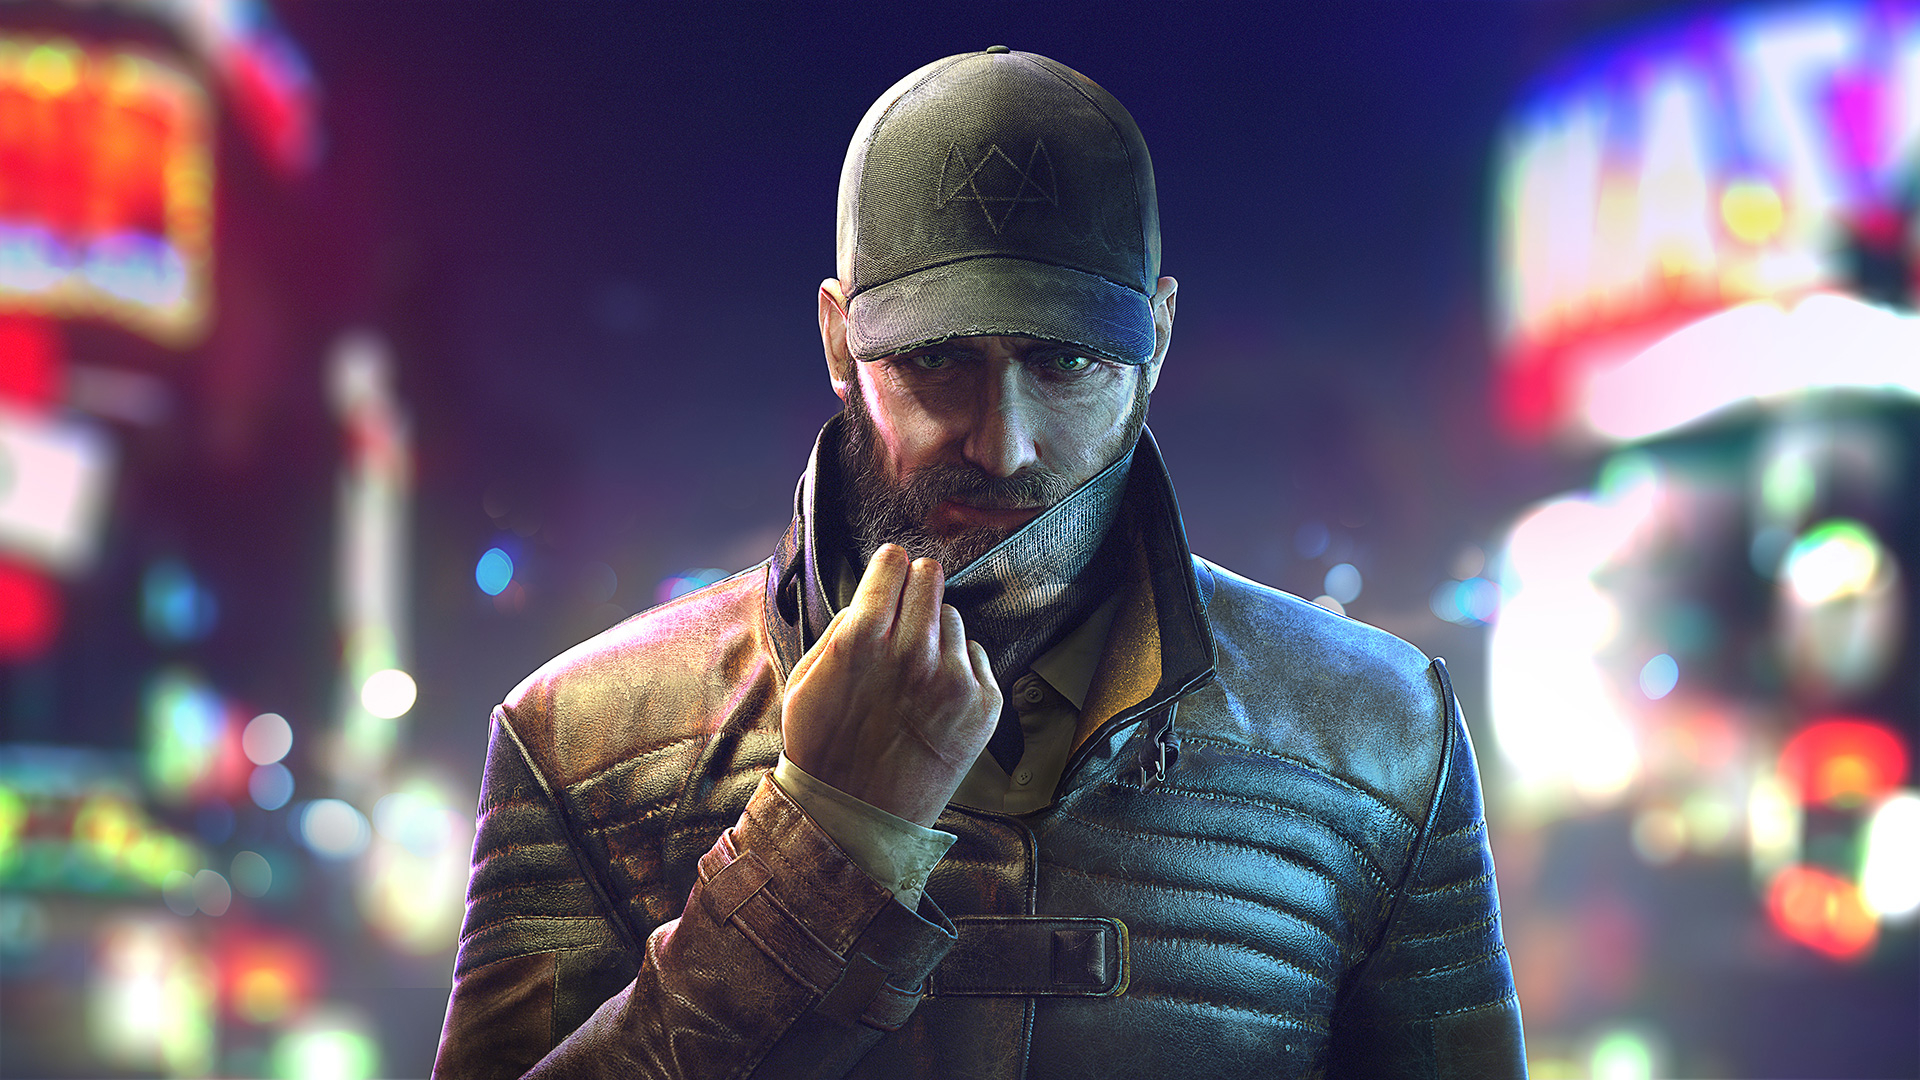 voice actors and cast list - Watch Dogs: Legion - Aiden Pearce